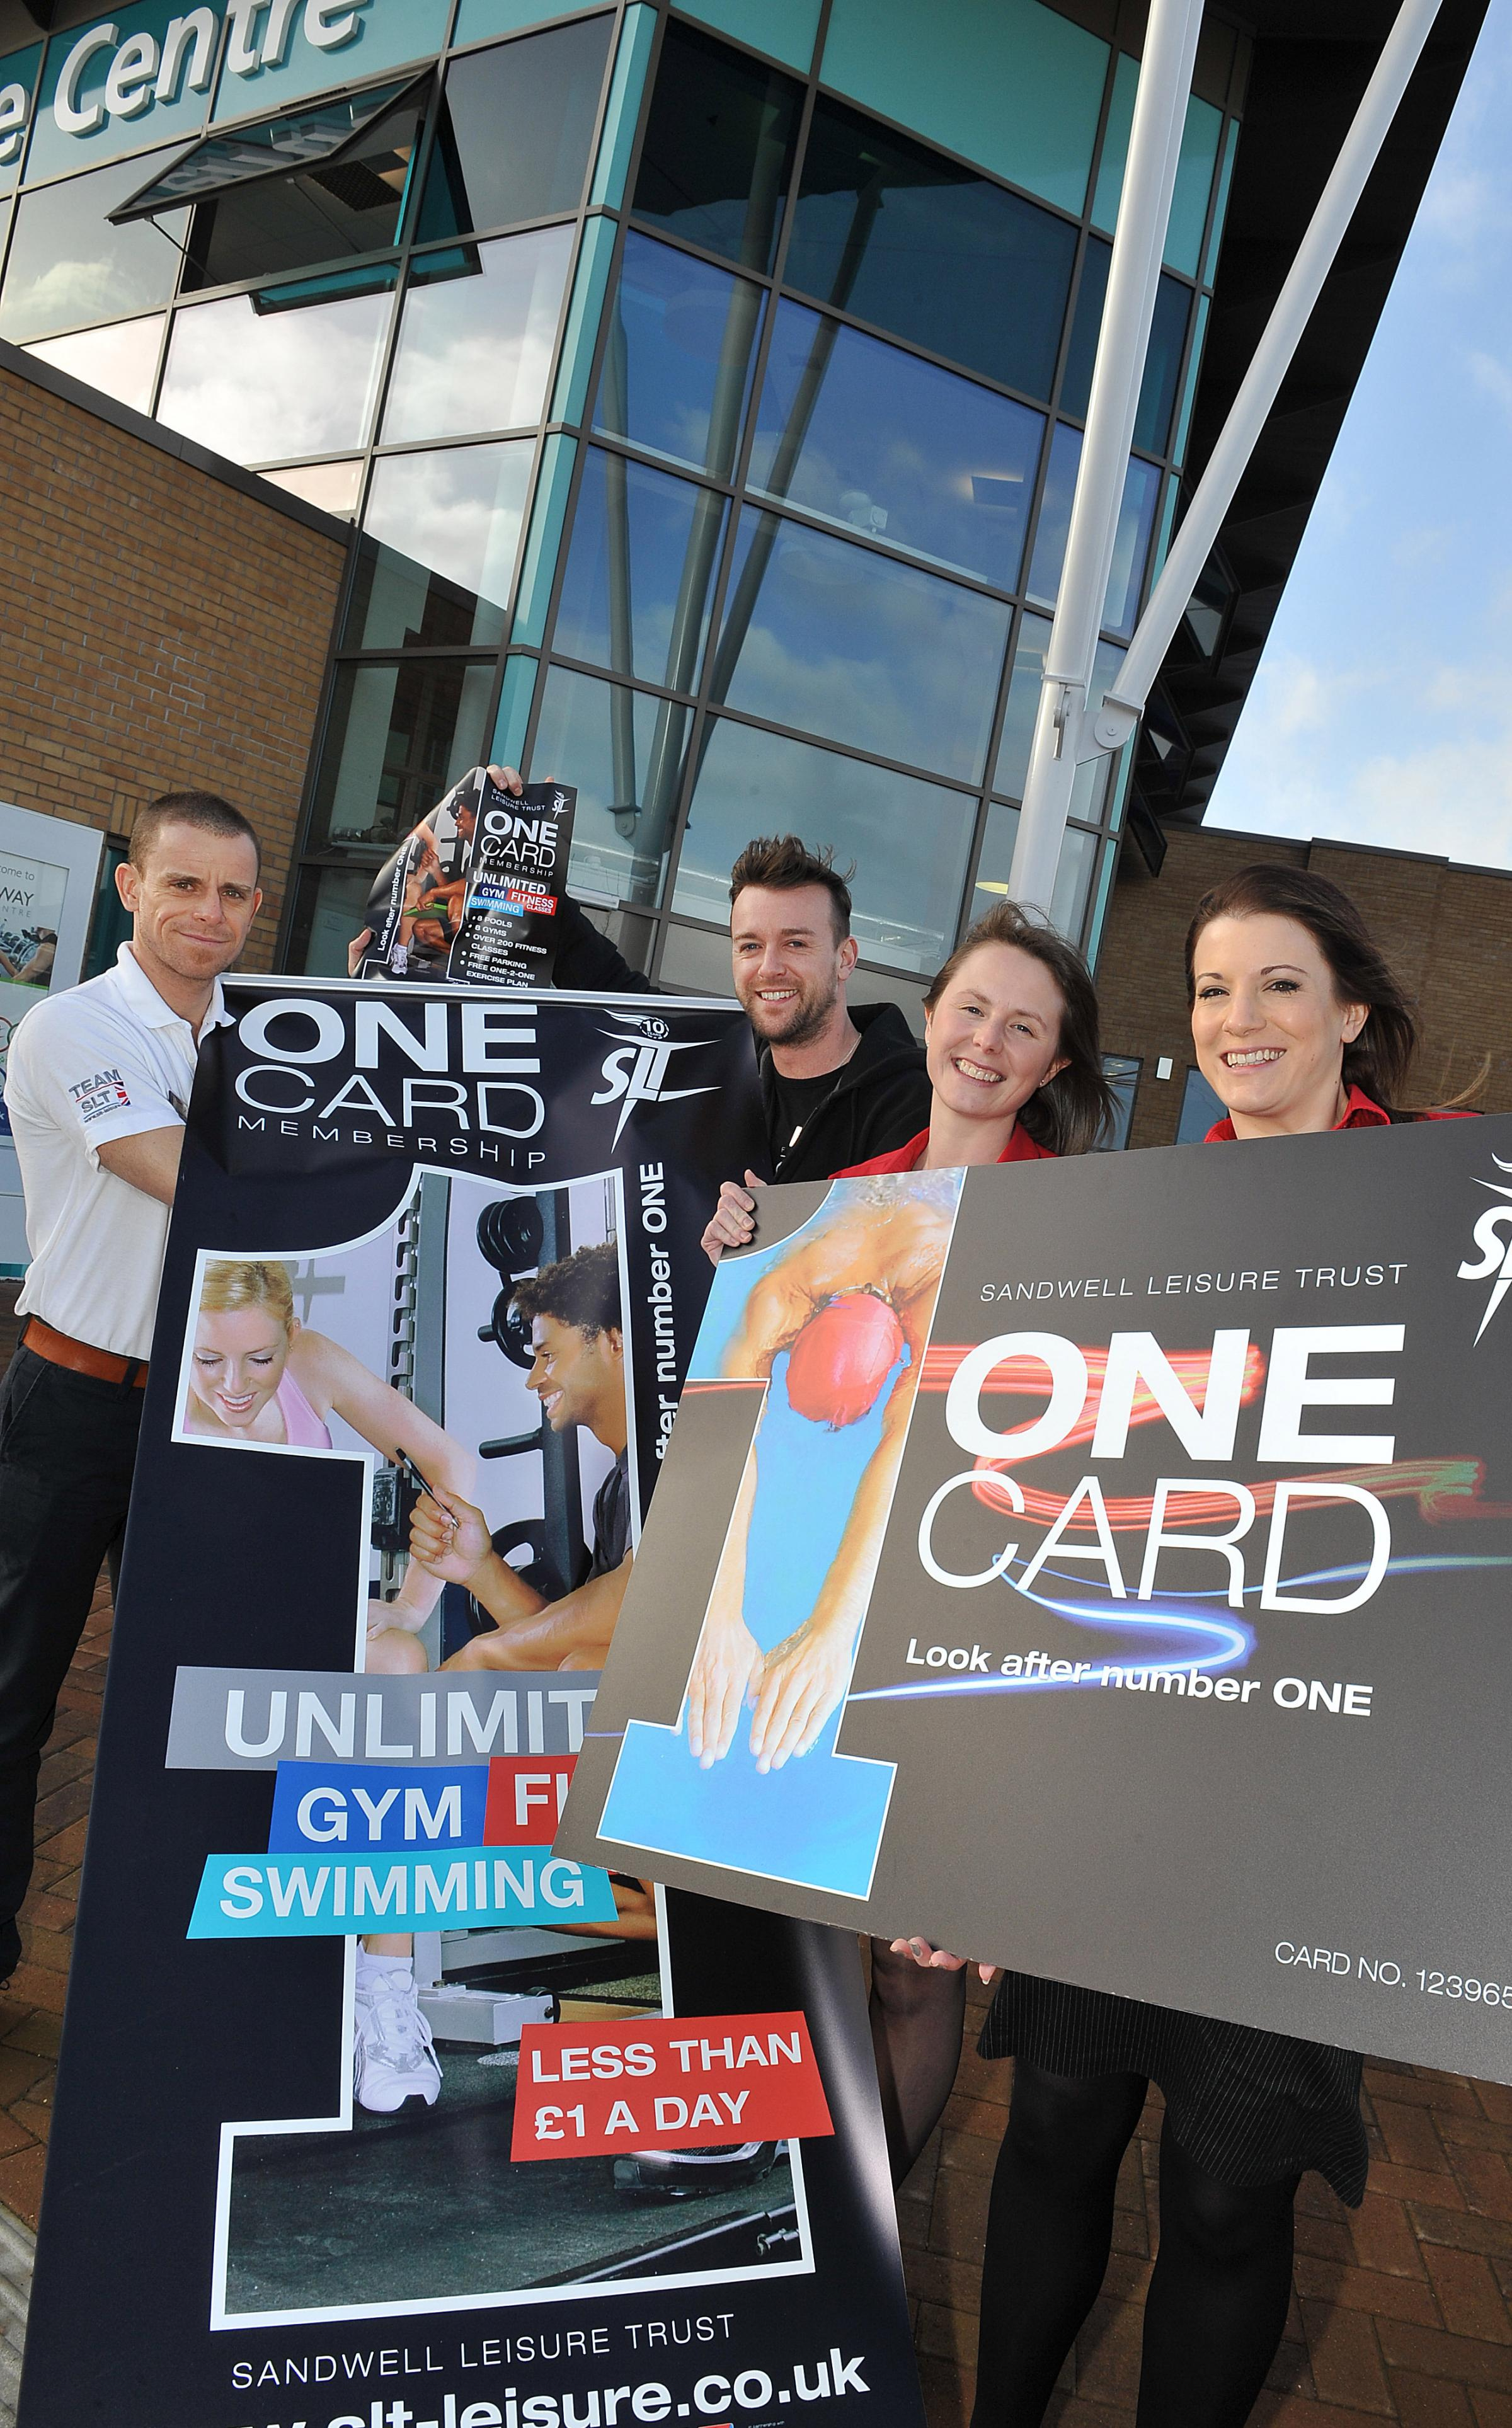 Portway Lifestyle's gym team Kevin Daly and Scott Parish with Sandwell Leisure Trust's Lisa Richards and Catherine Furnival launch the new fitness sessions.